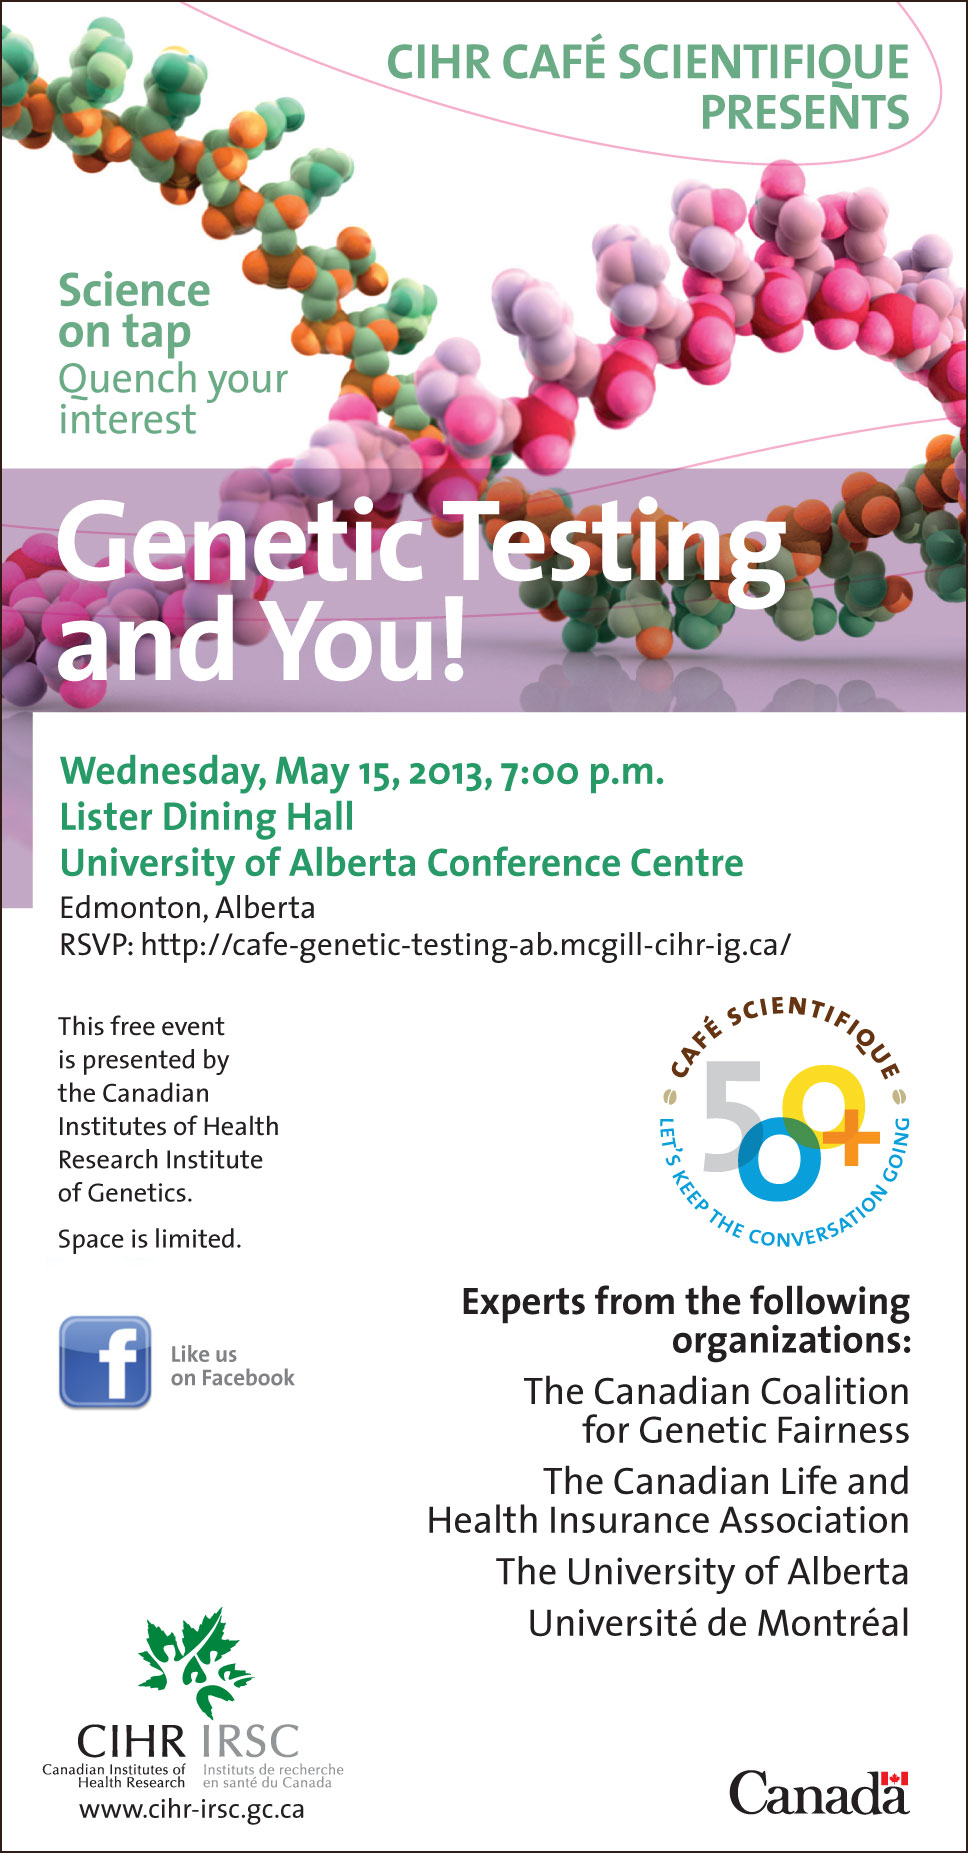 This free event is presented by the Canadian Institutes of Health Research Institute of Genetics.